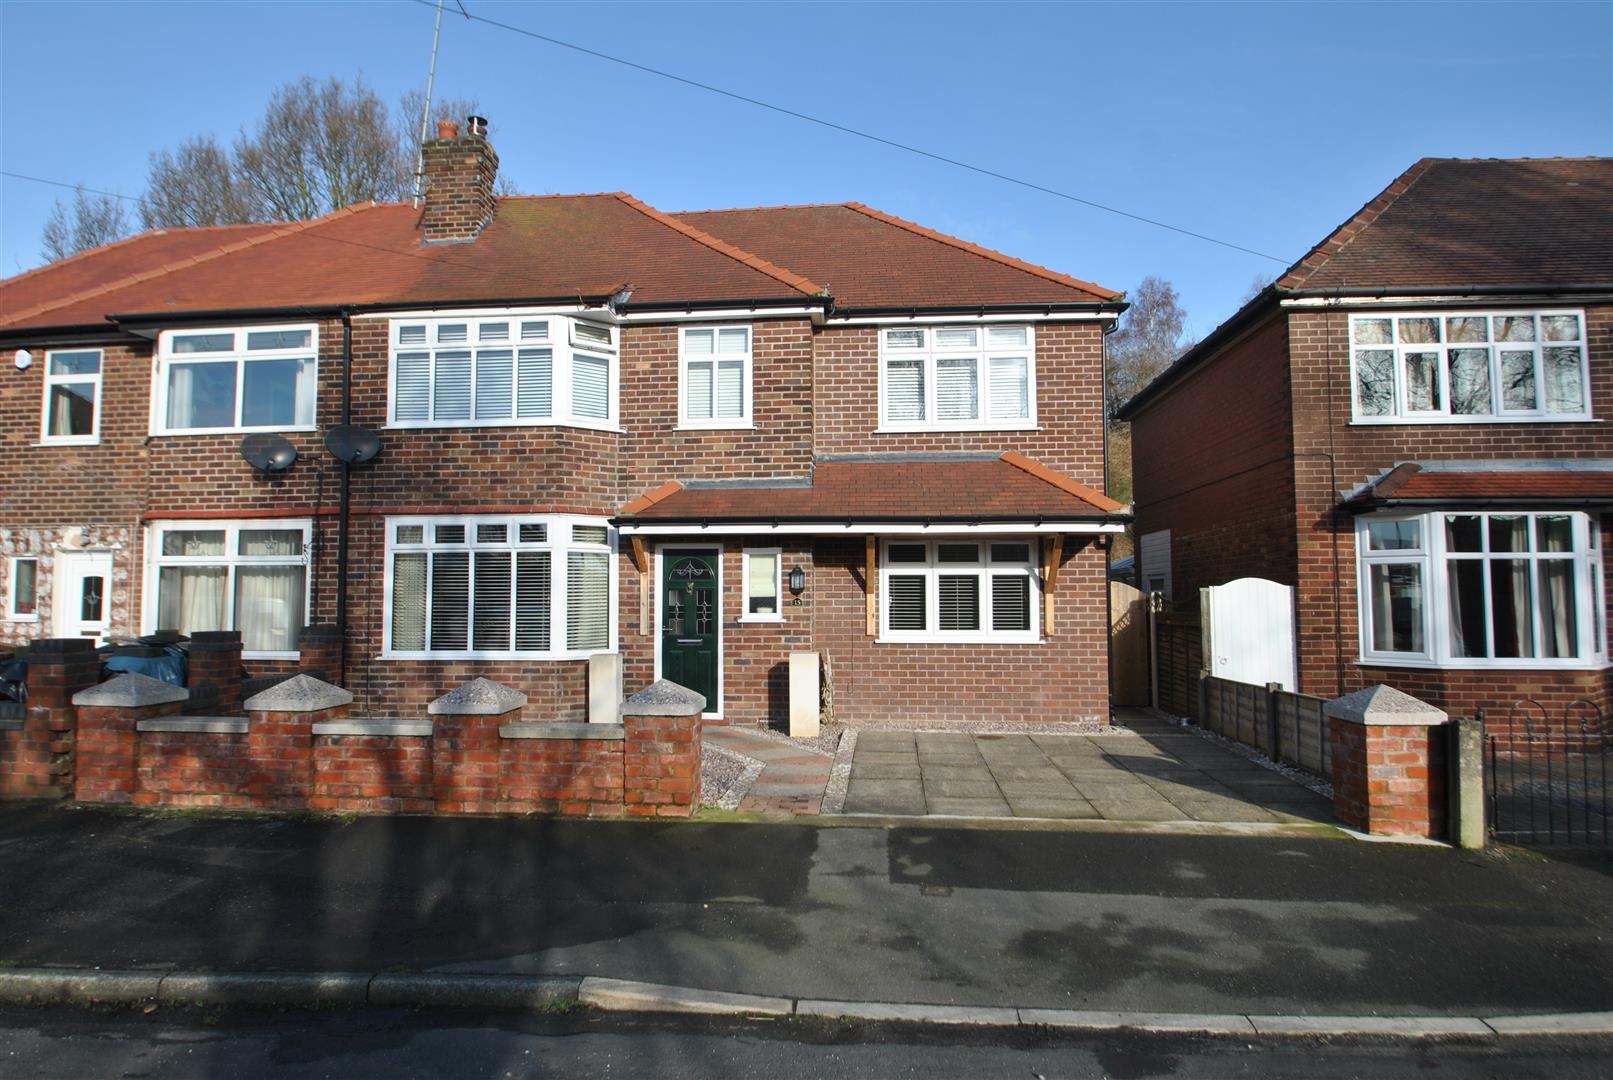 4 Bedrooms Semi Detached House for sale in Springfield Avenue, GRAPPENHALL,, Warrington, WA4